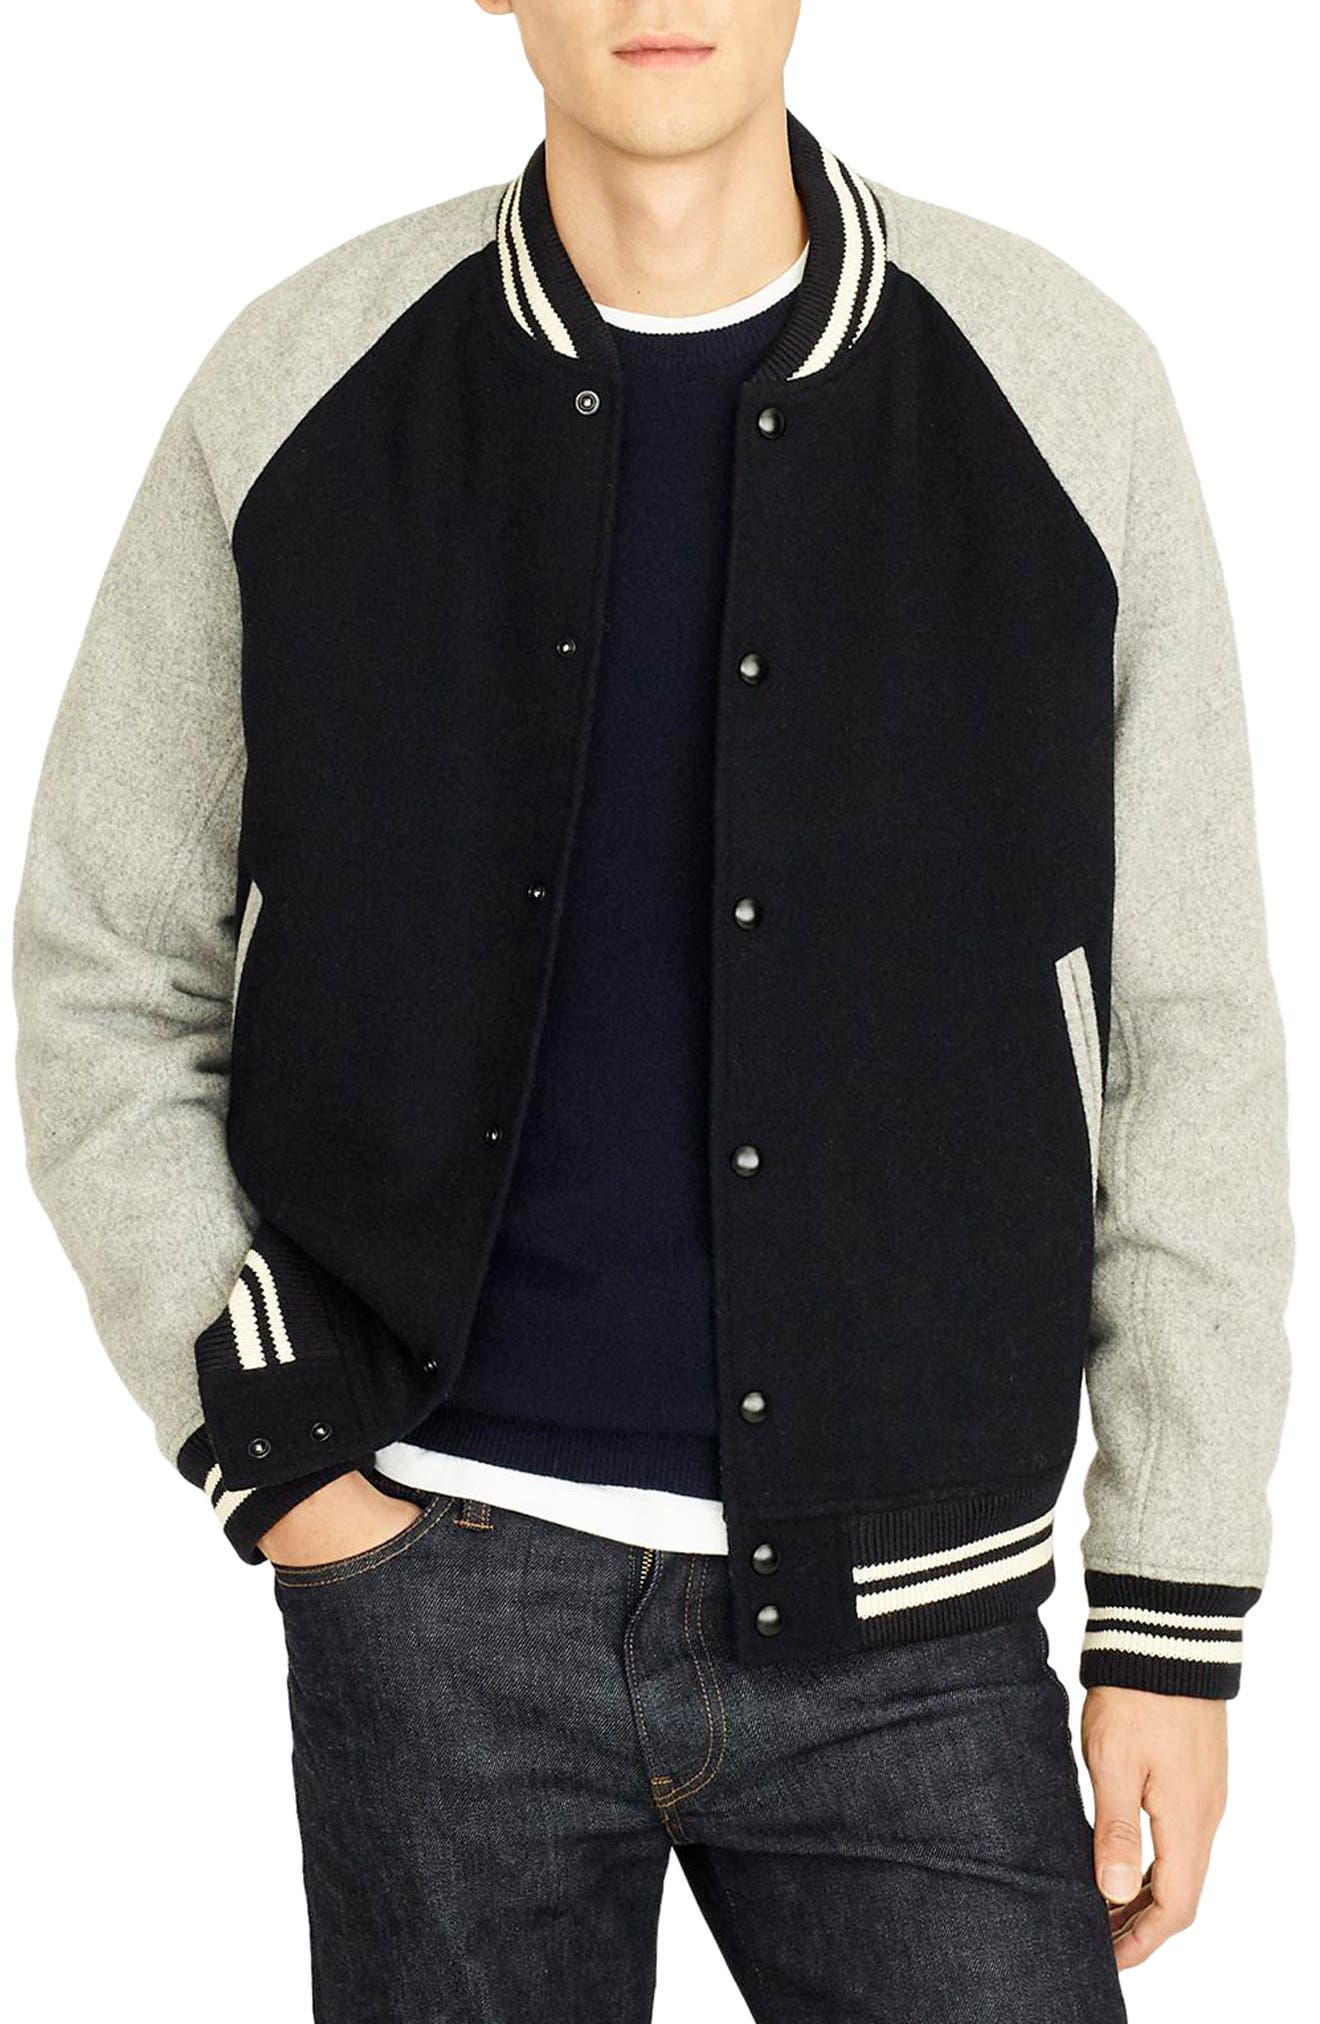 Men's Vintage Style Coats and Jackets Mens J.crew Letterman Wool Blend Jacket $113.98 AT vintagedancer.com